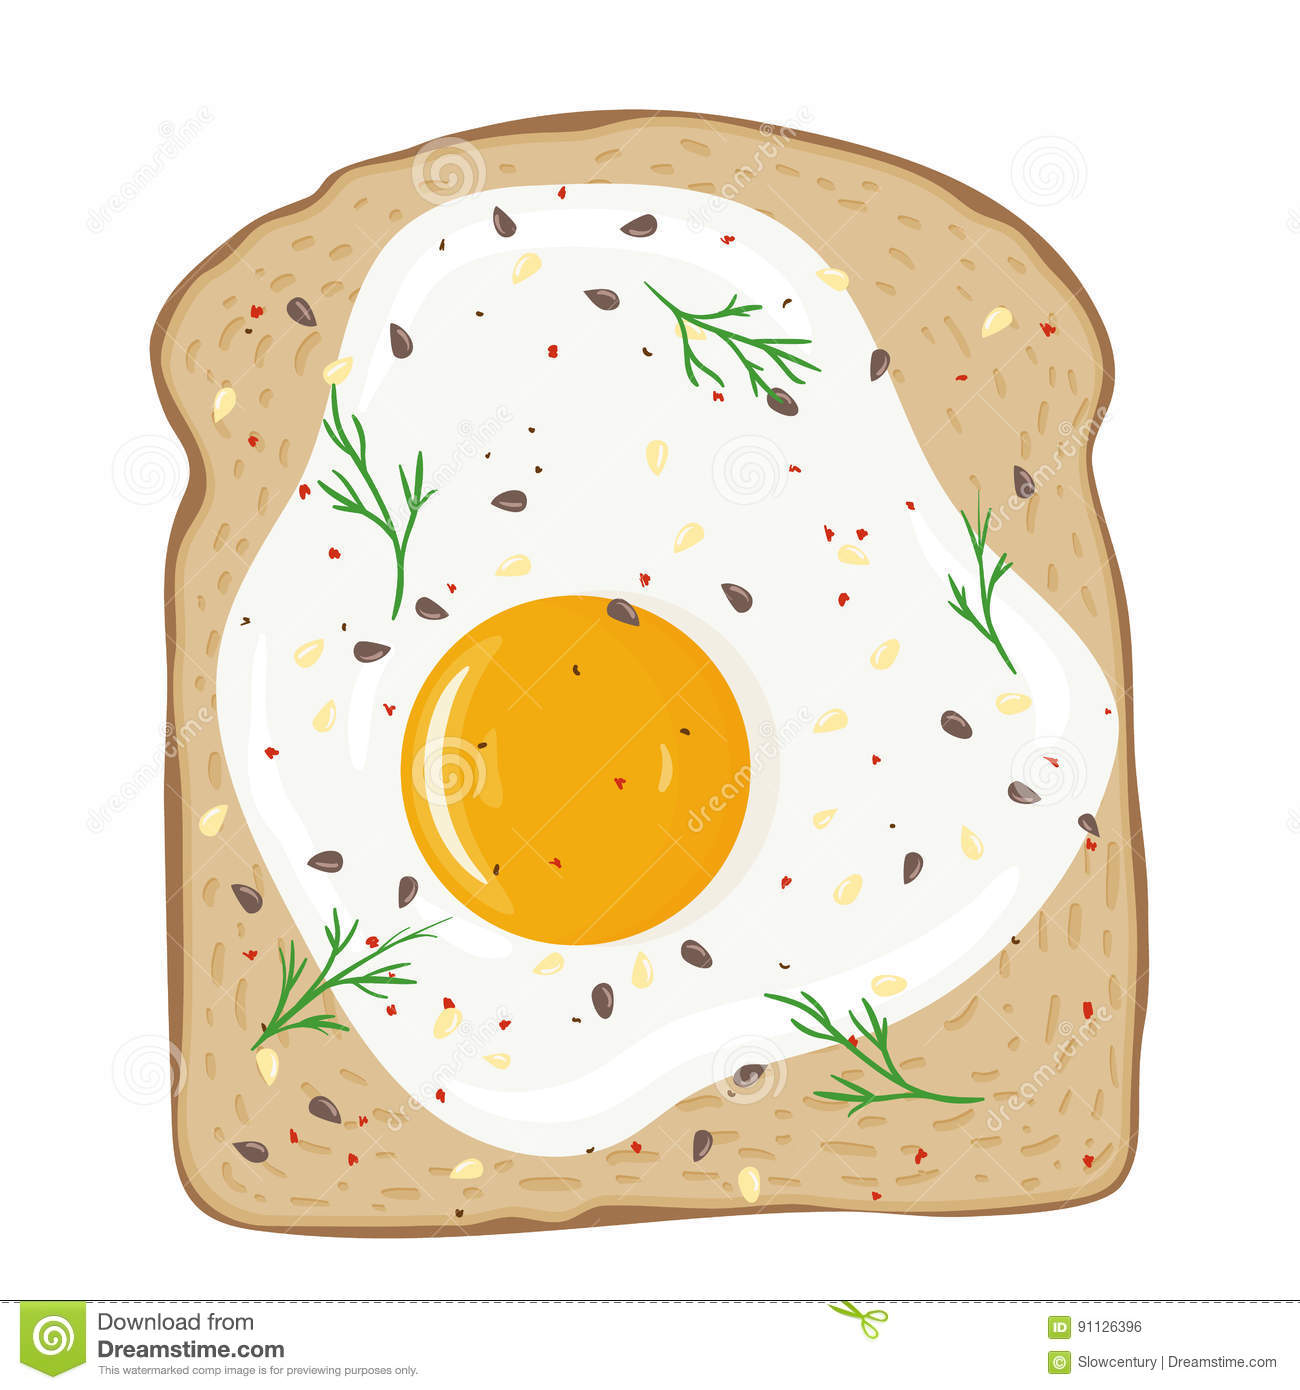 Fried Egg On Toast Bread. Delicious Egg Sandwich. Vector.